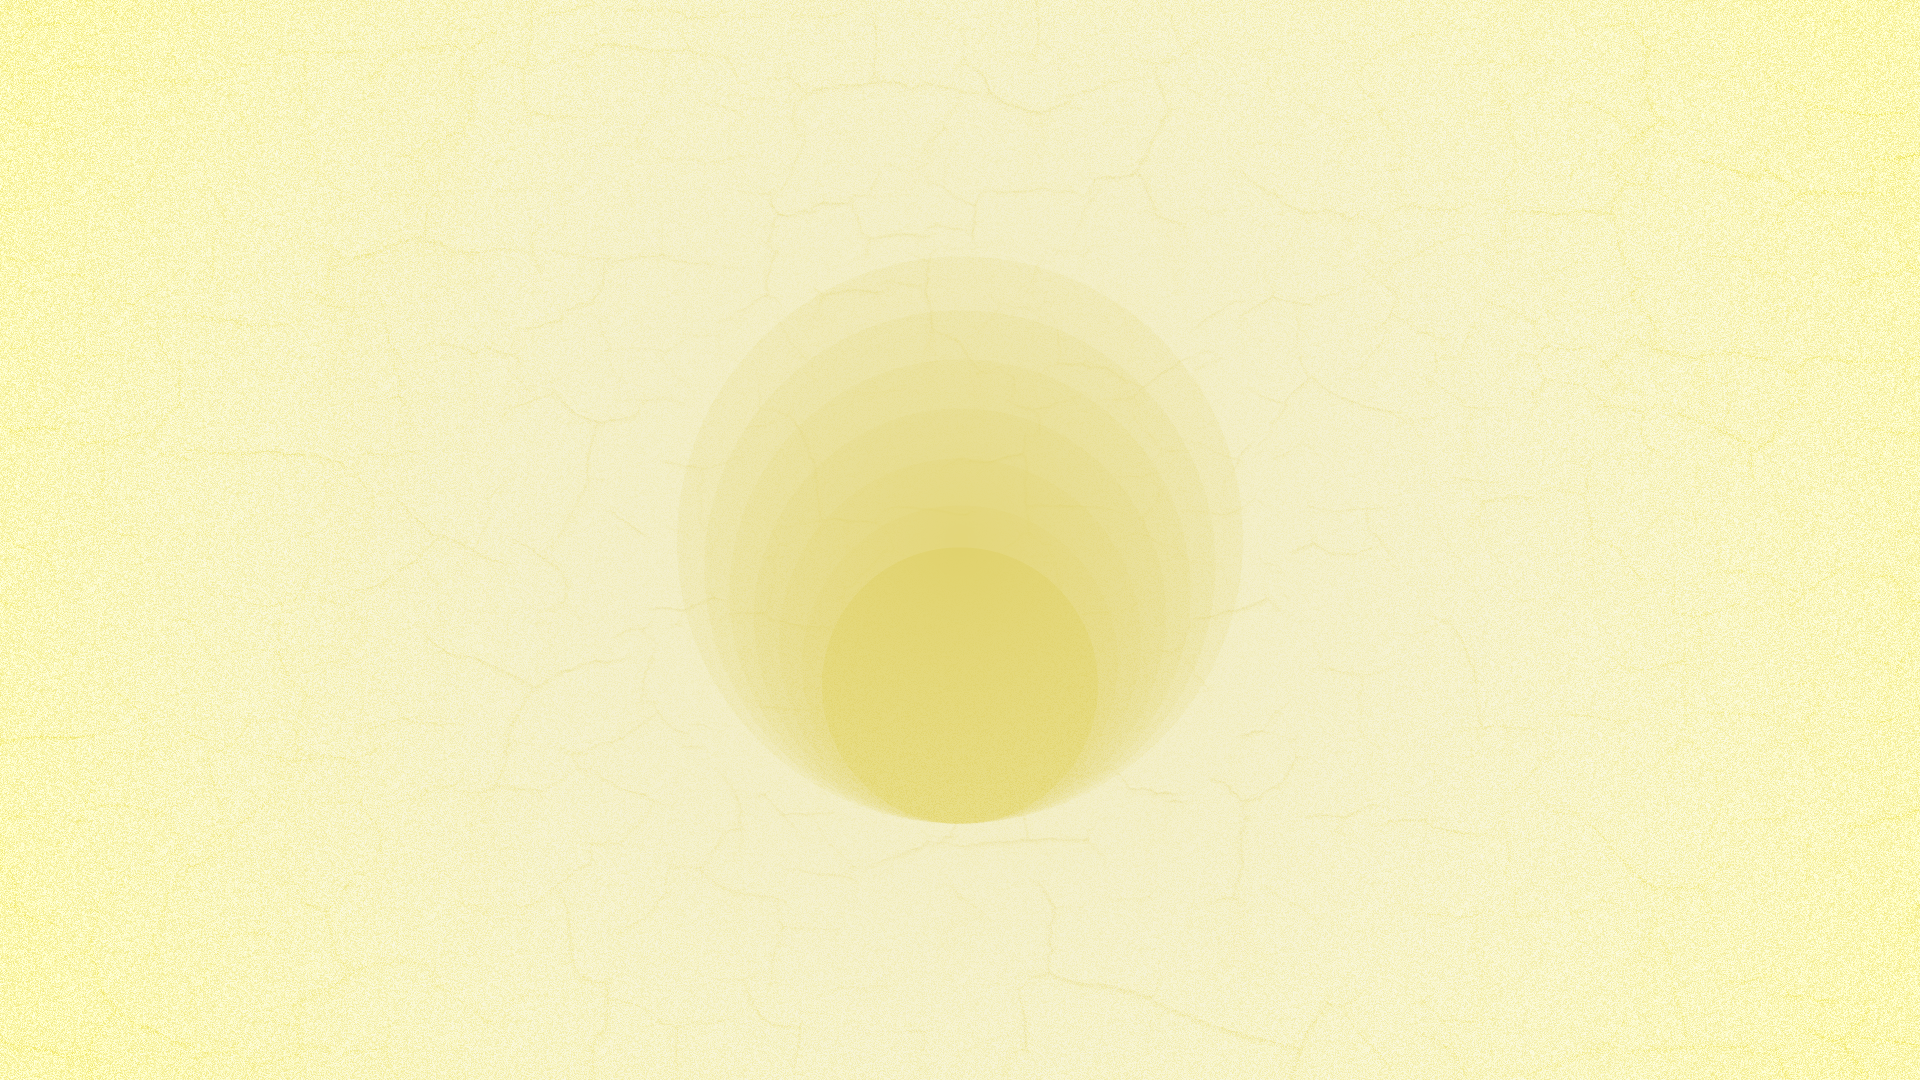 Yellow Vortex